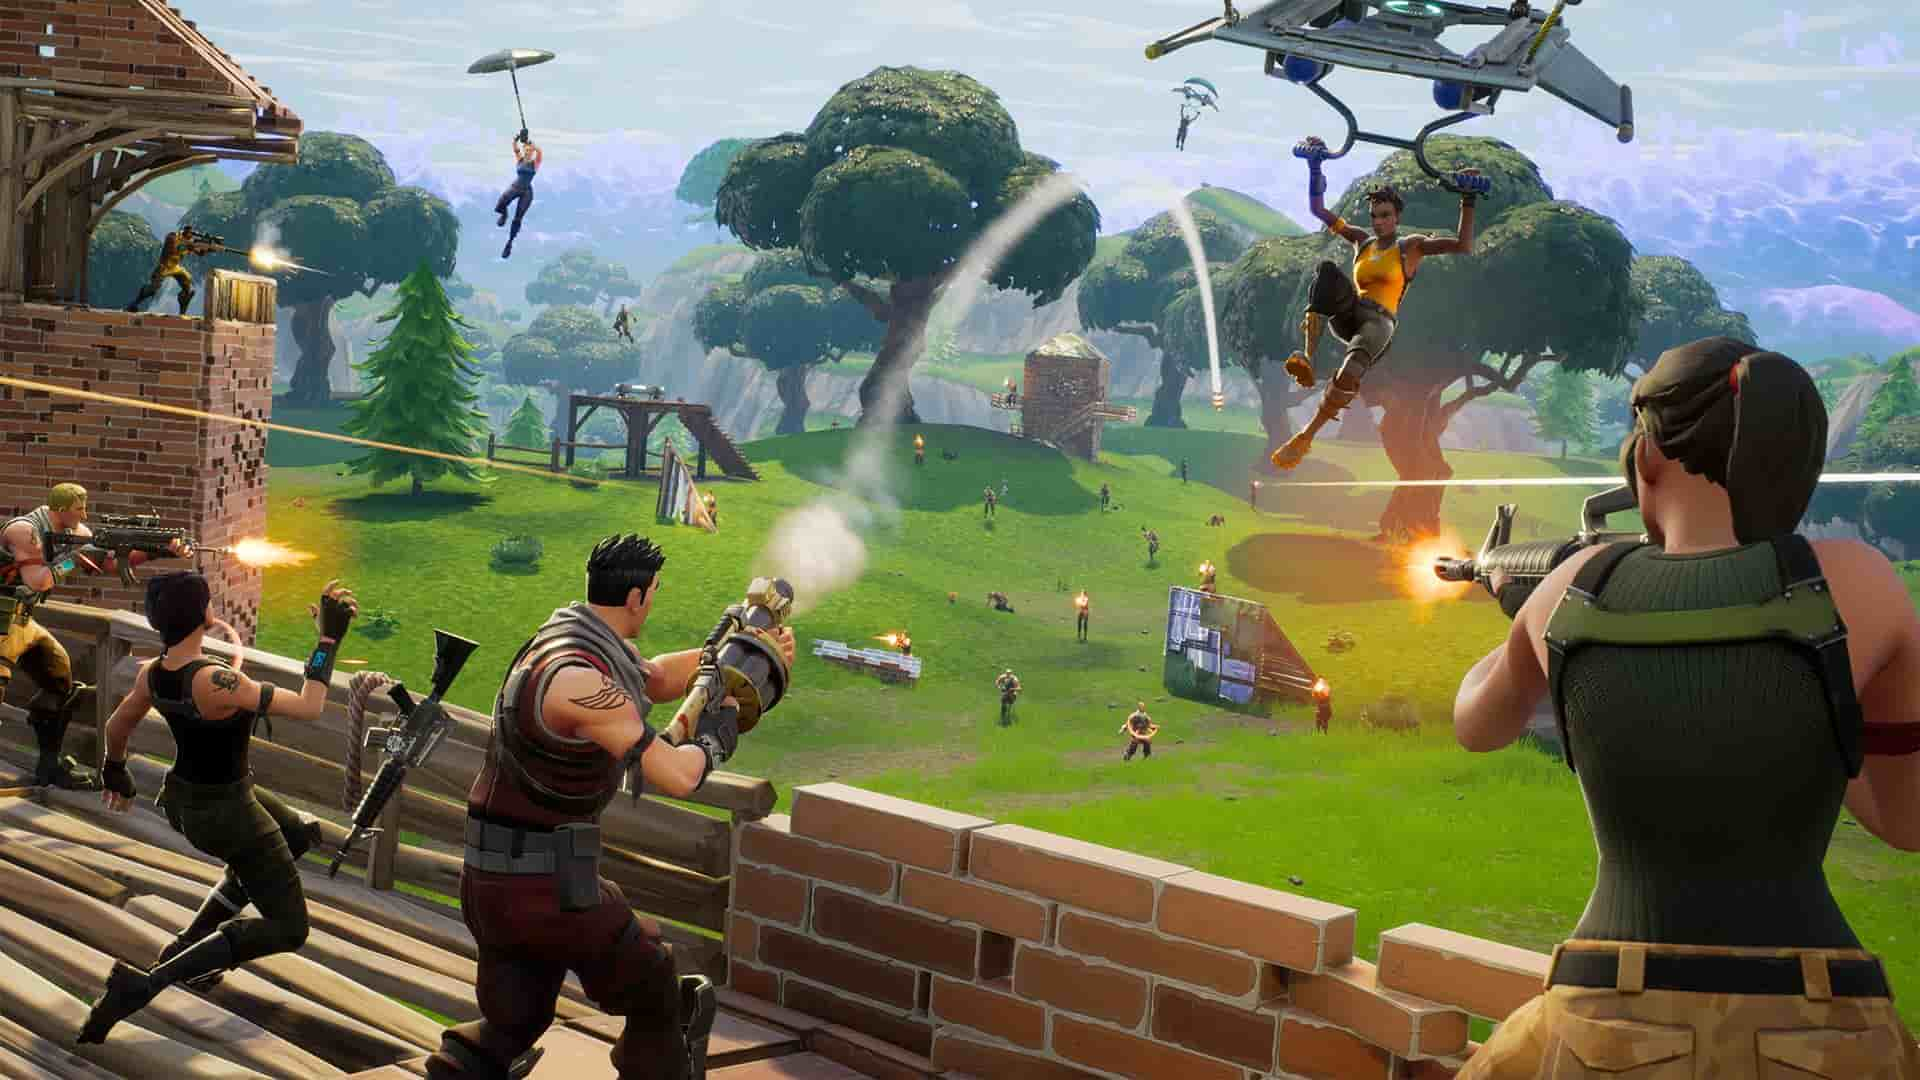 Fortnite Week 2 Challenges Details Have Leaked Early